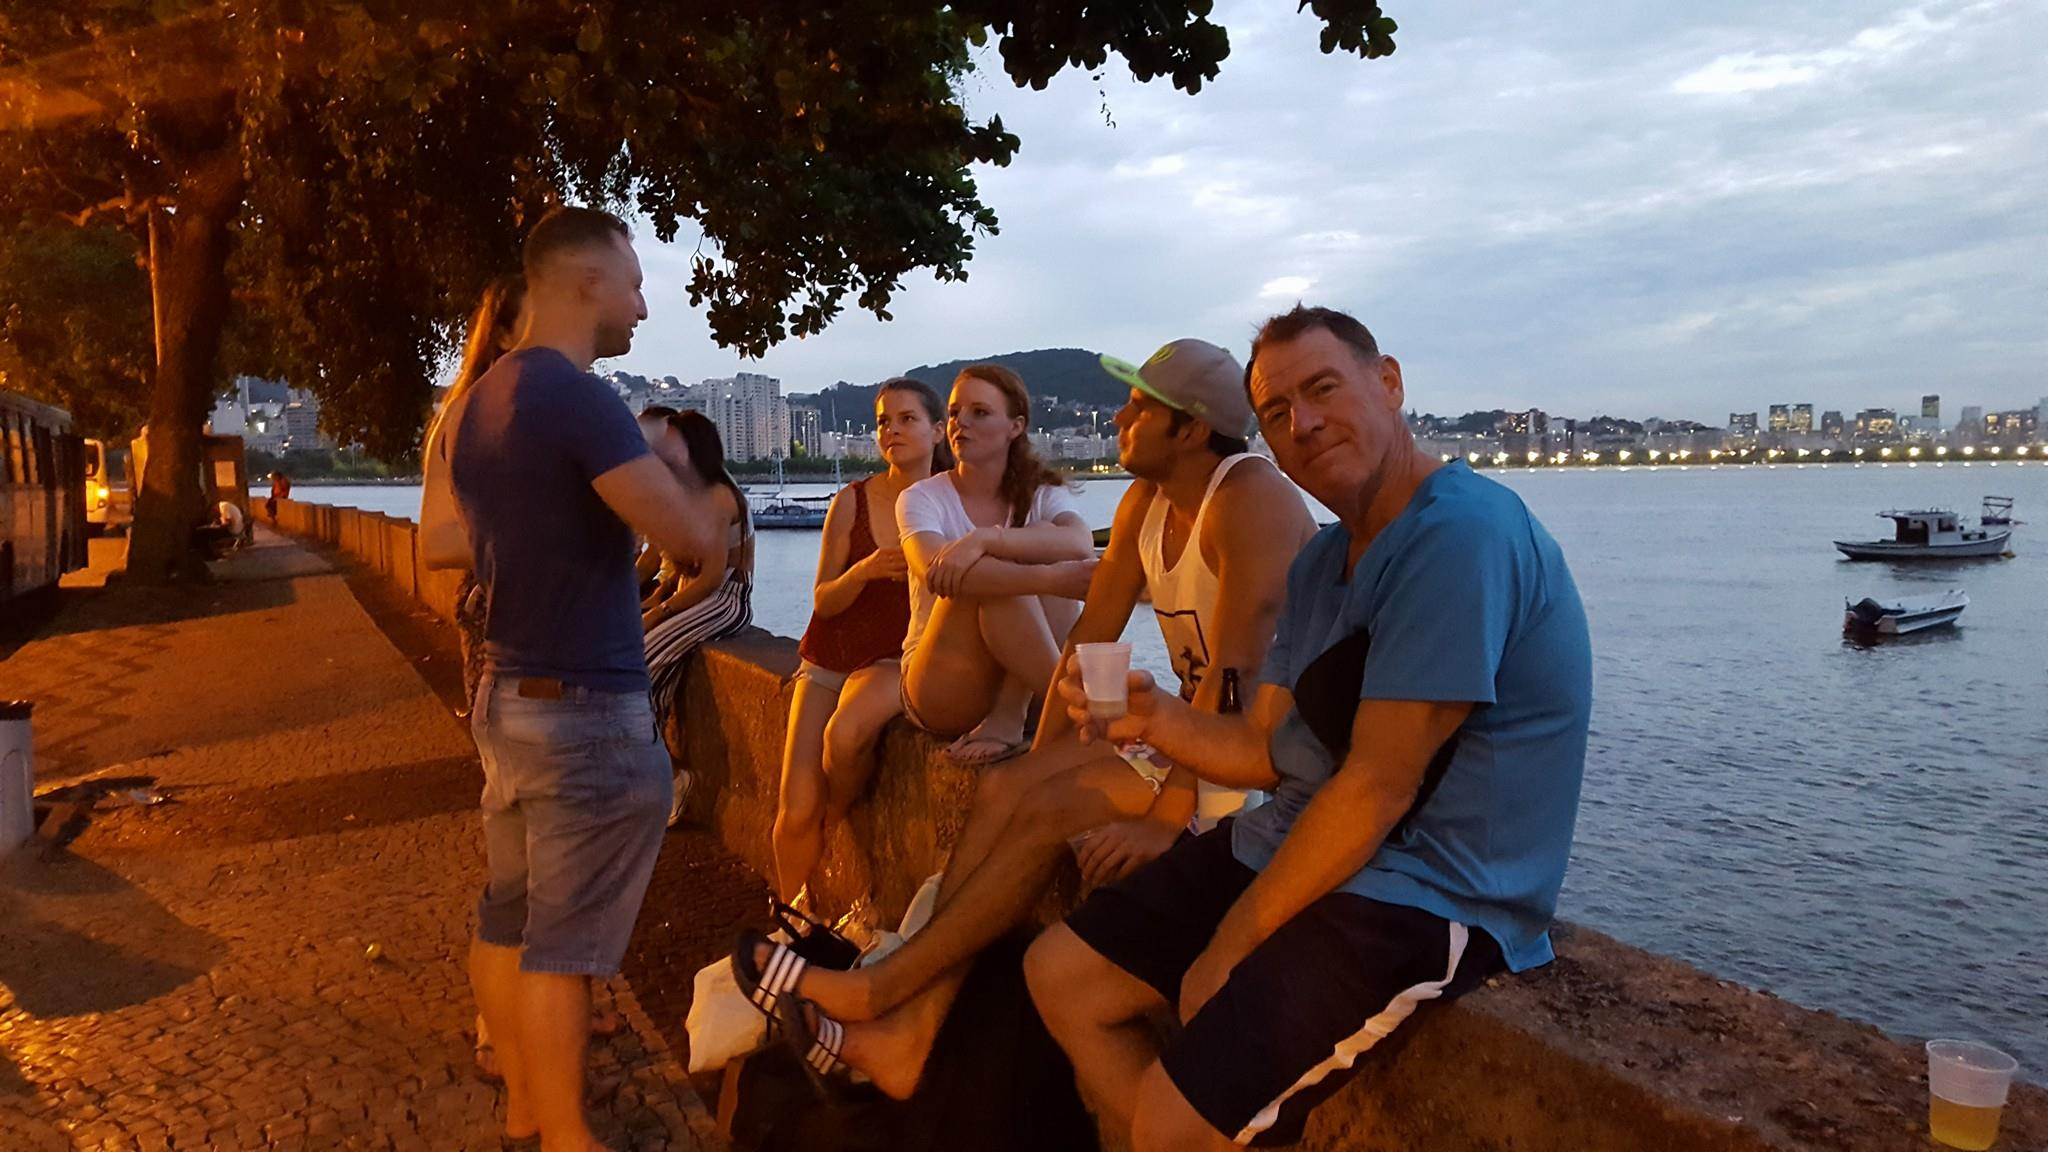 We finished our RioLIVE! having some beer at the famous Urca wall.